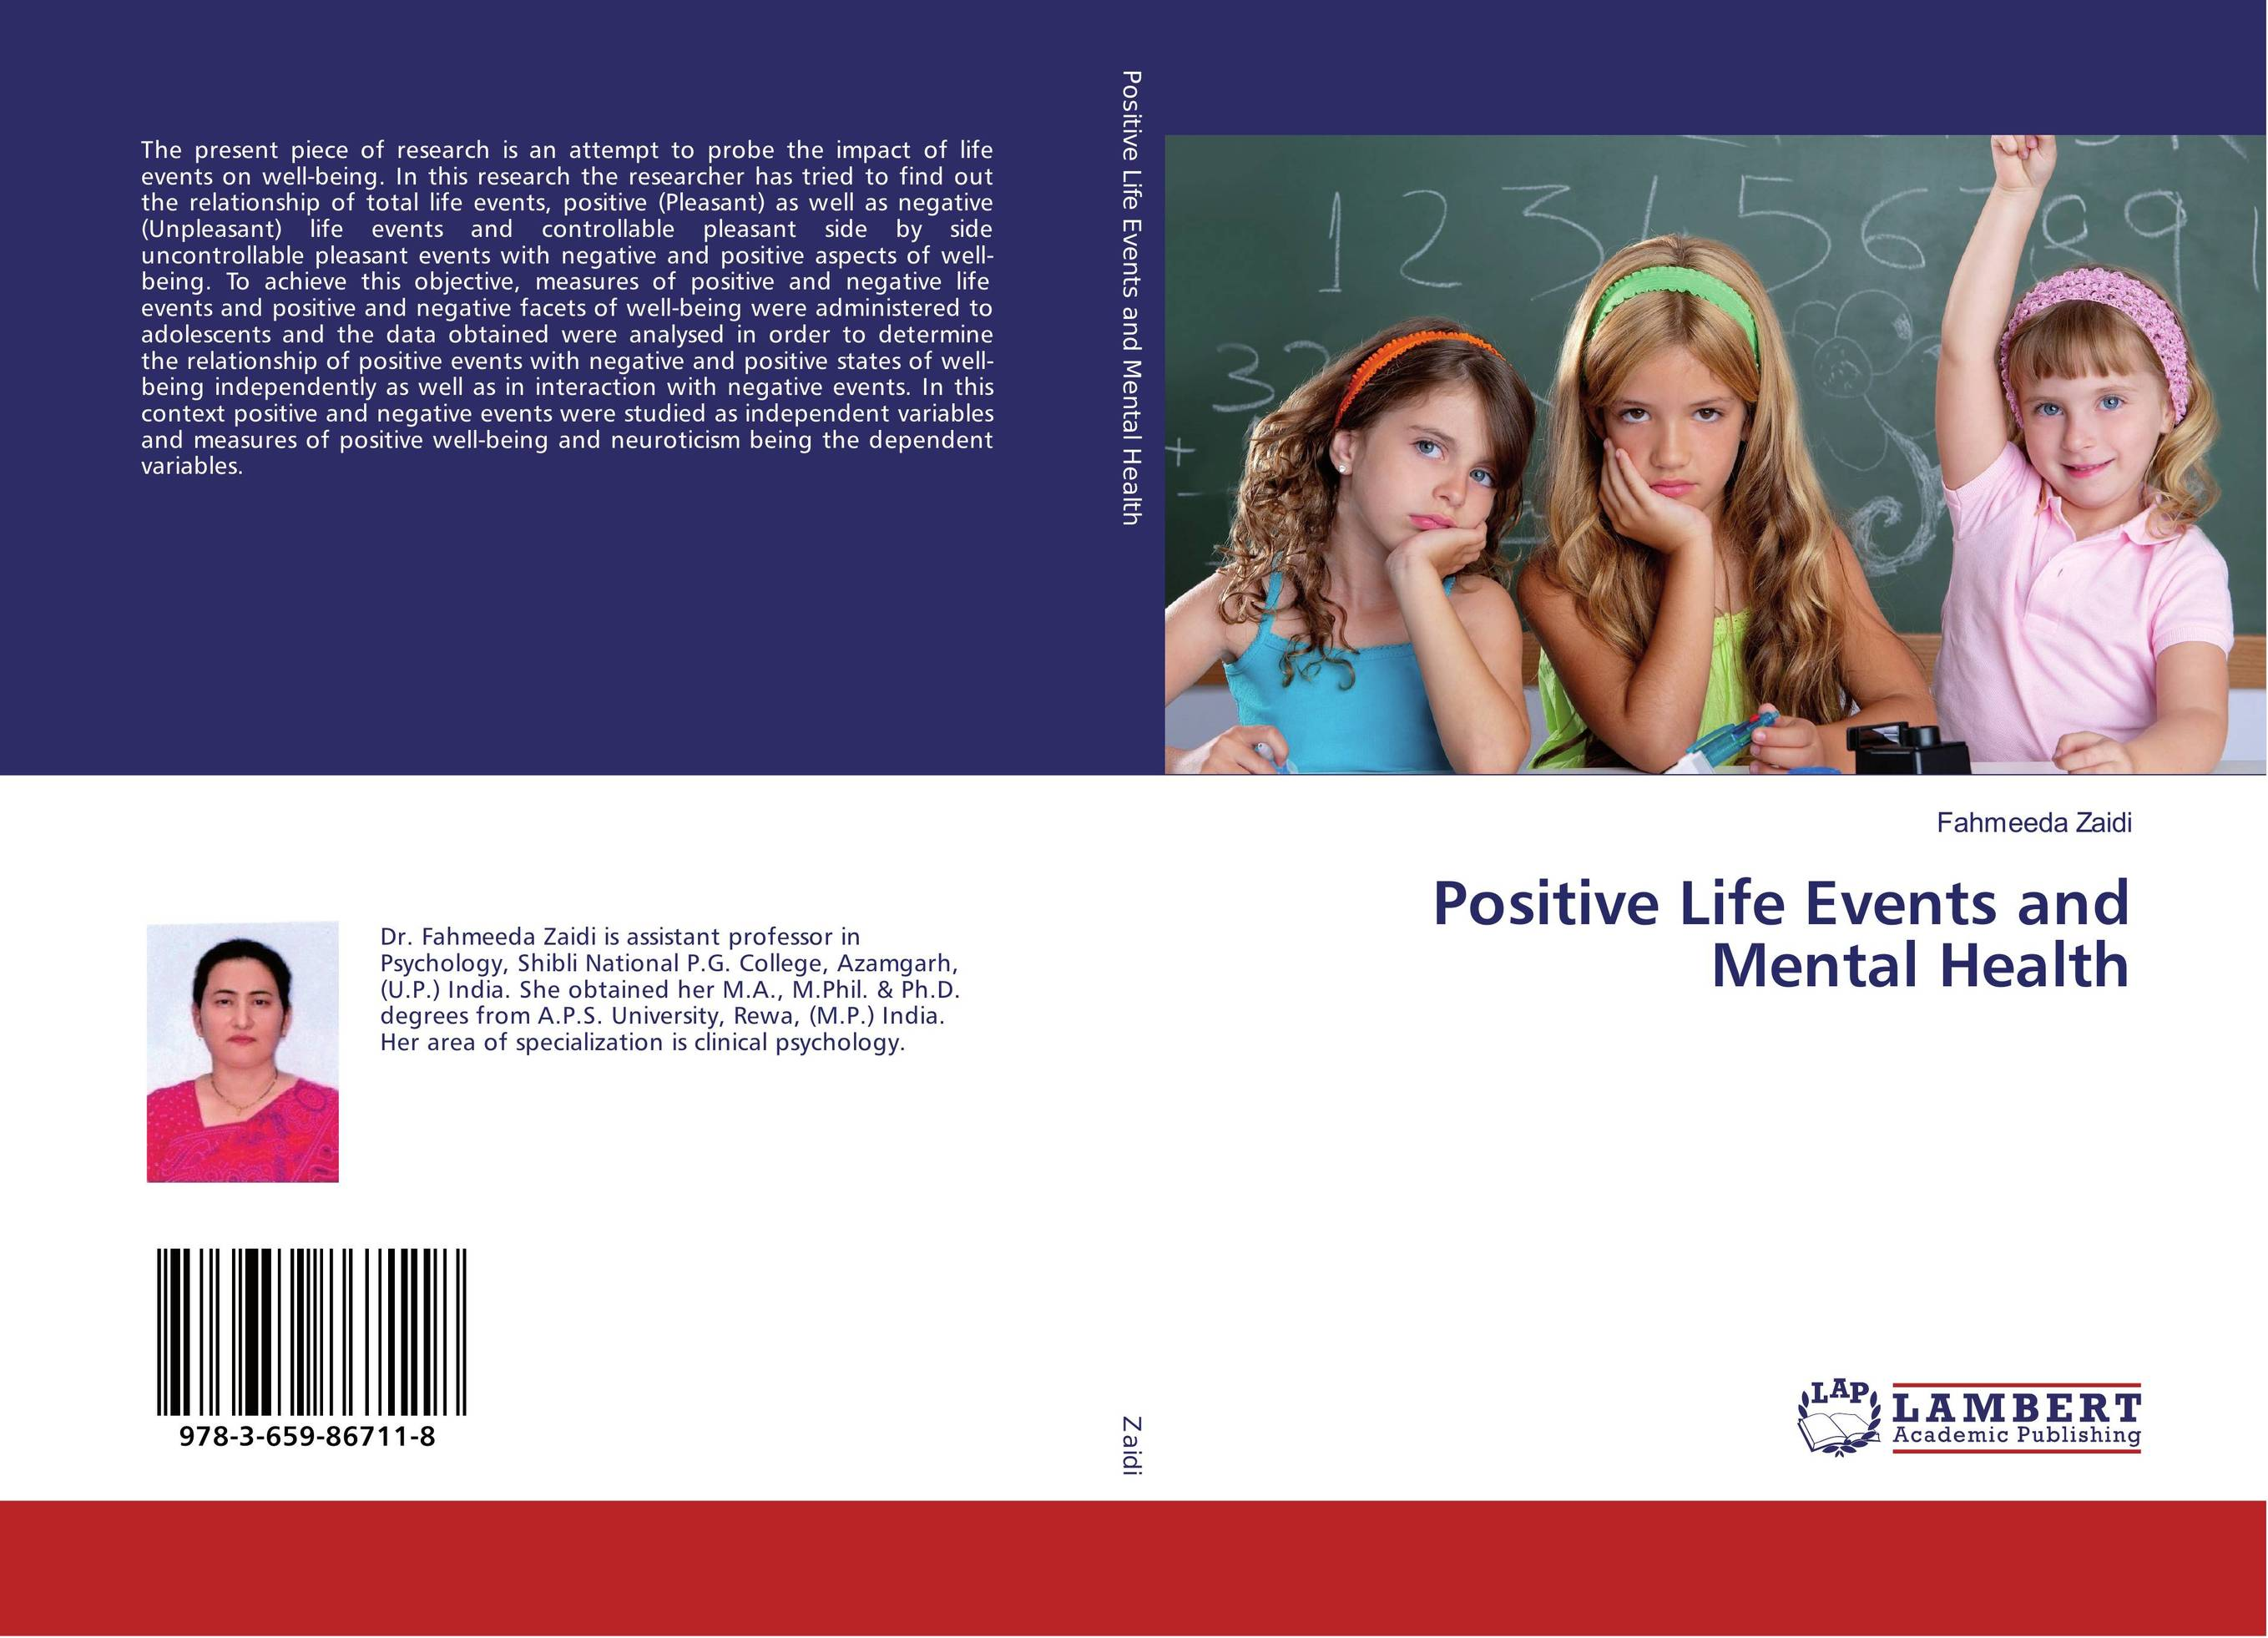 Positive Life Events and Mental Health migration and well being an exploratory study of delhi's slums